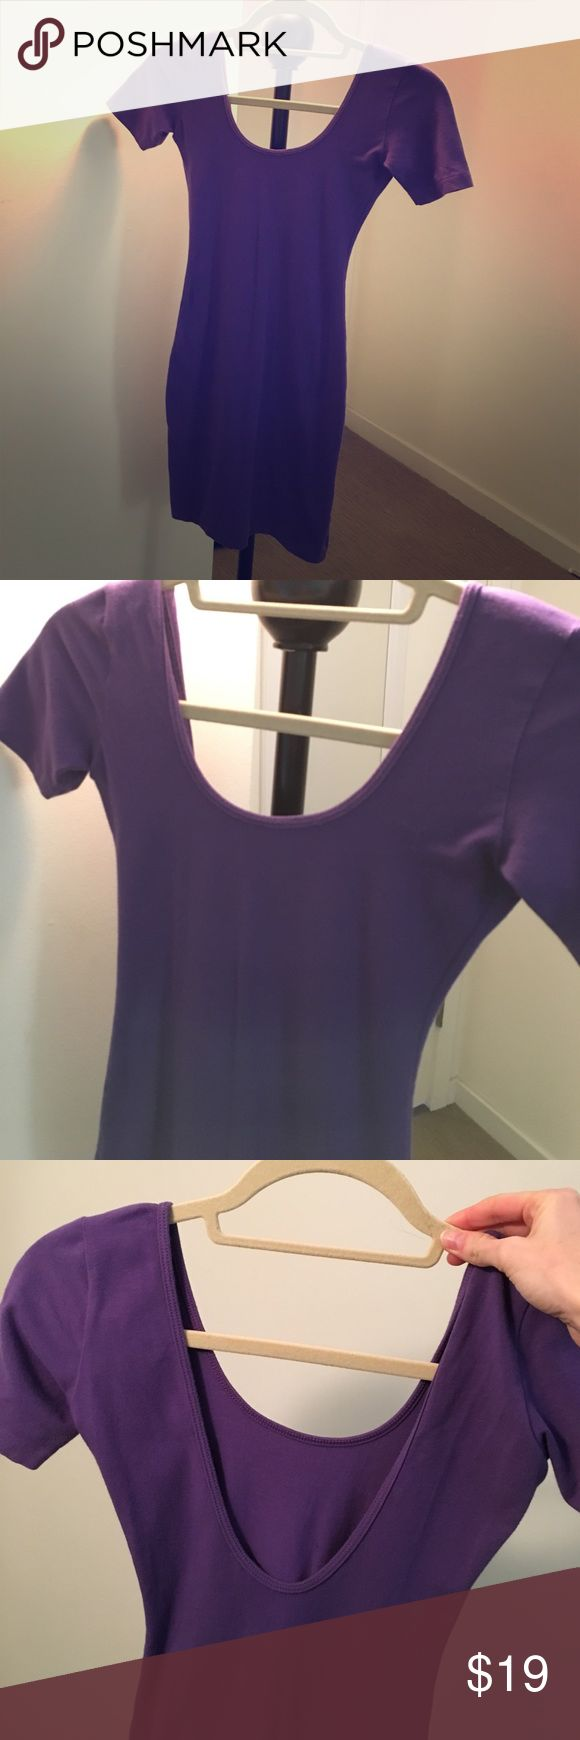 Purple bodycon dress Purple bodycon dress. Only worn once. Perfect condition. Very cute. Can dress up or down Dresses Mini